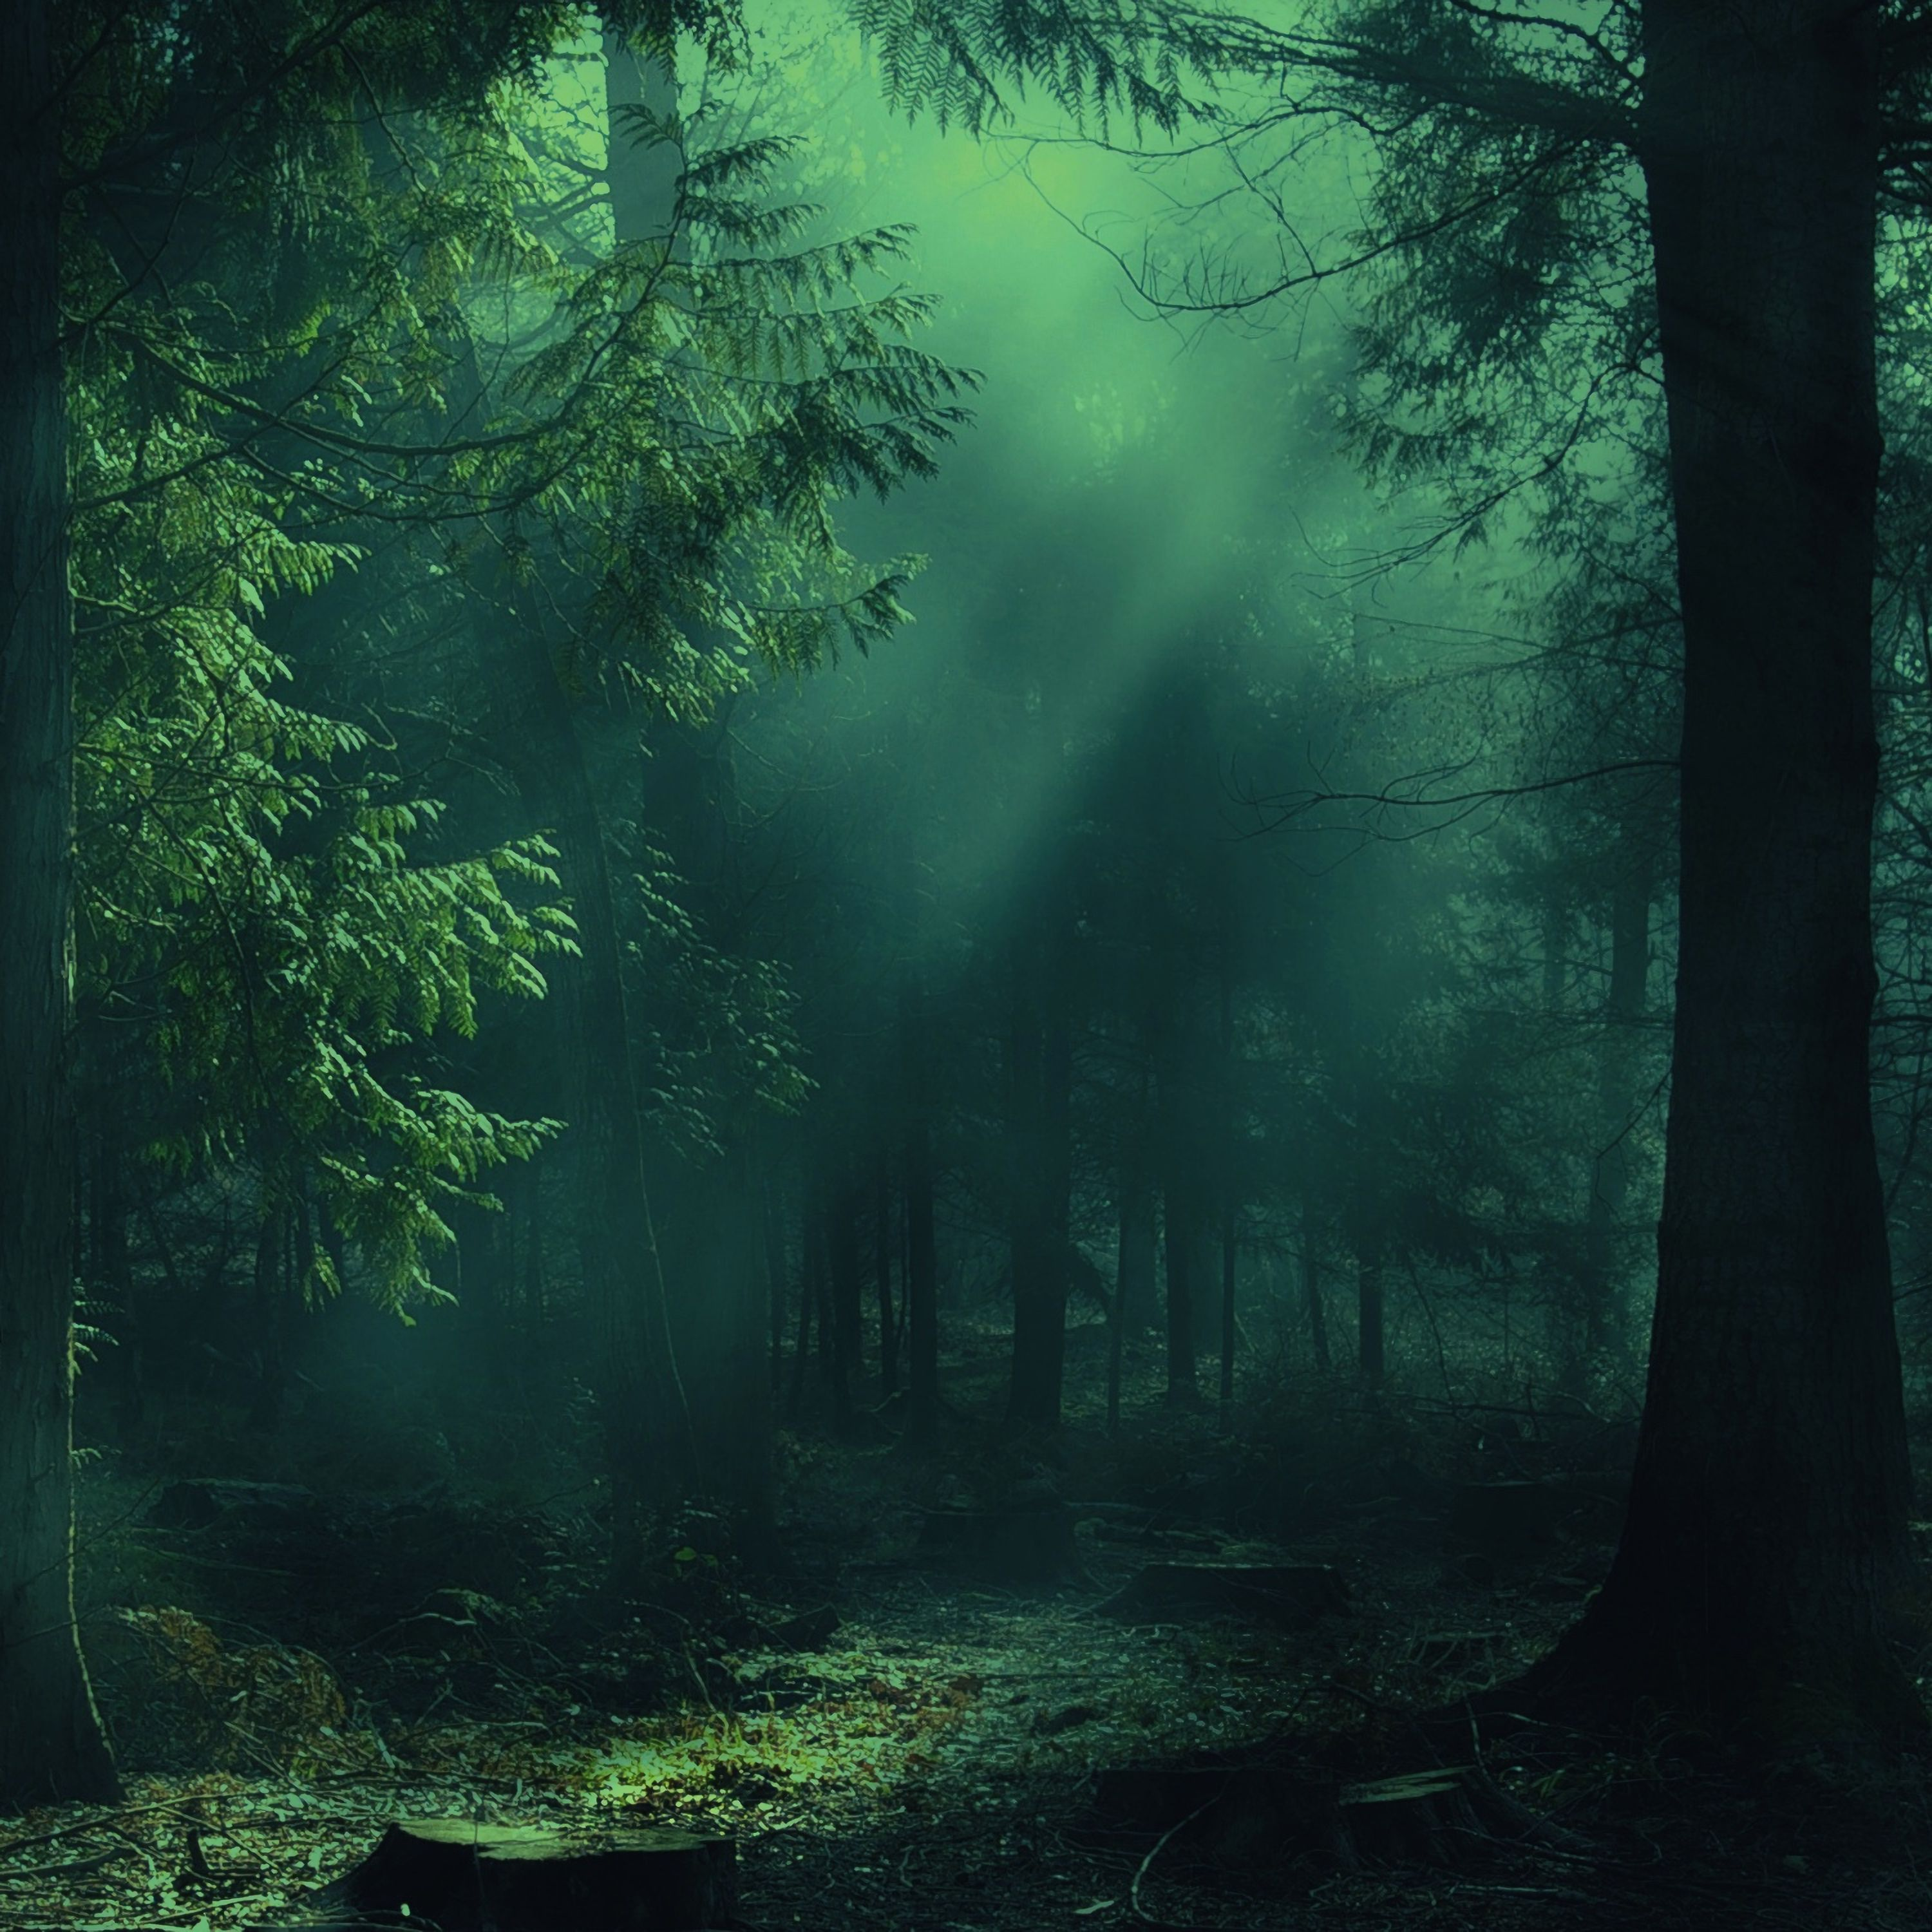 155402 download wallpaper Trees, Forest, Light, Shine, Nature, Fog, Shadows screensavers and pictures for free